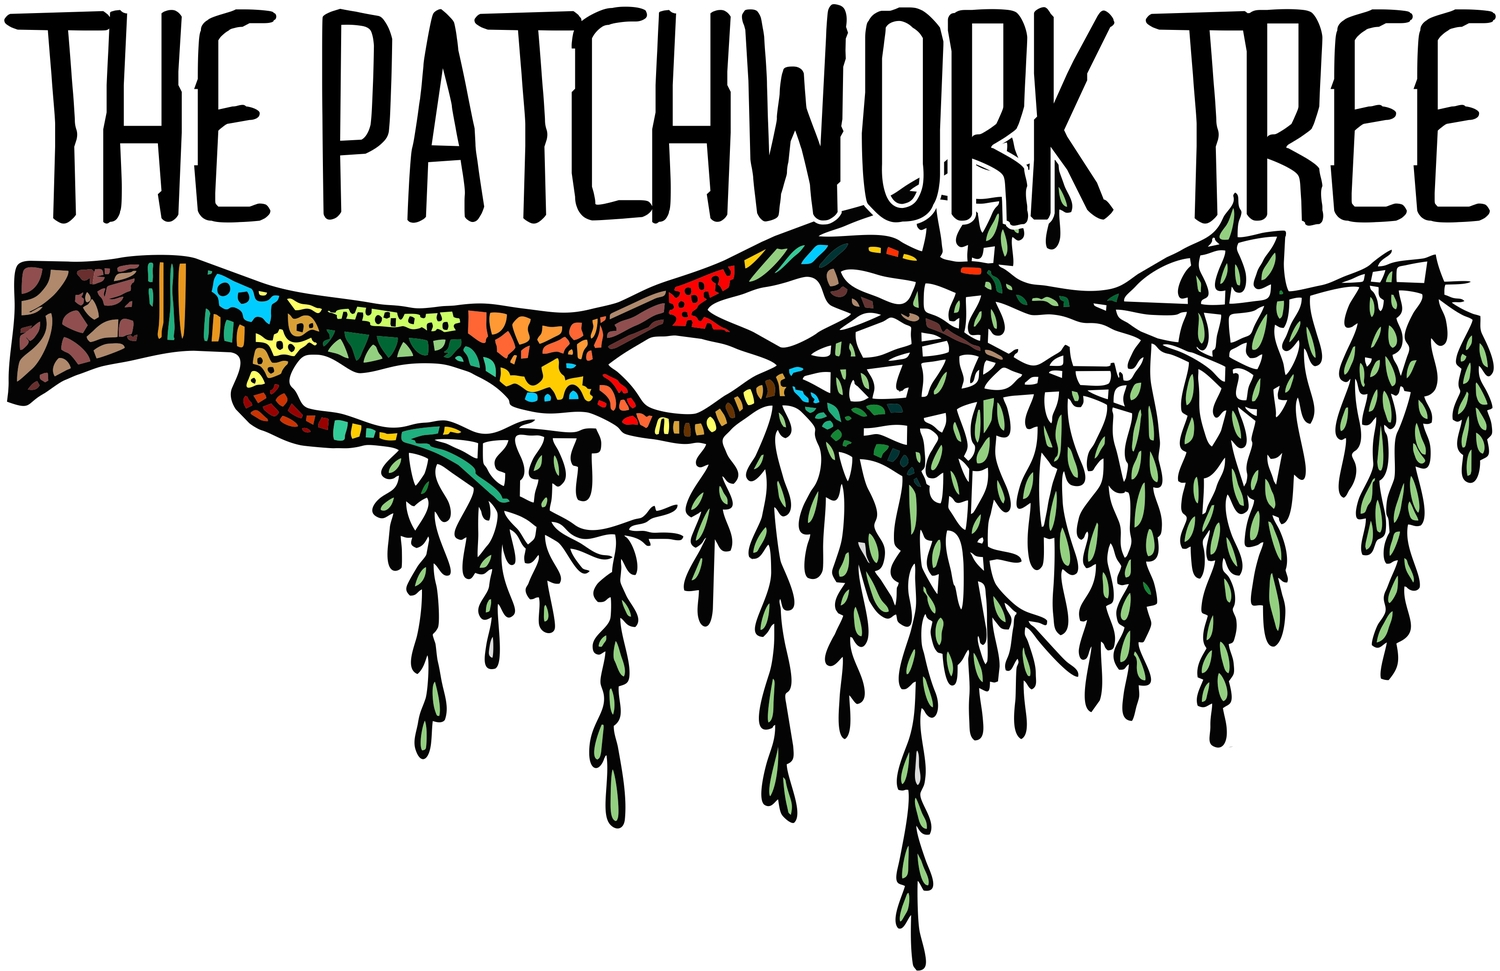 The Patchwork Tree